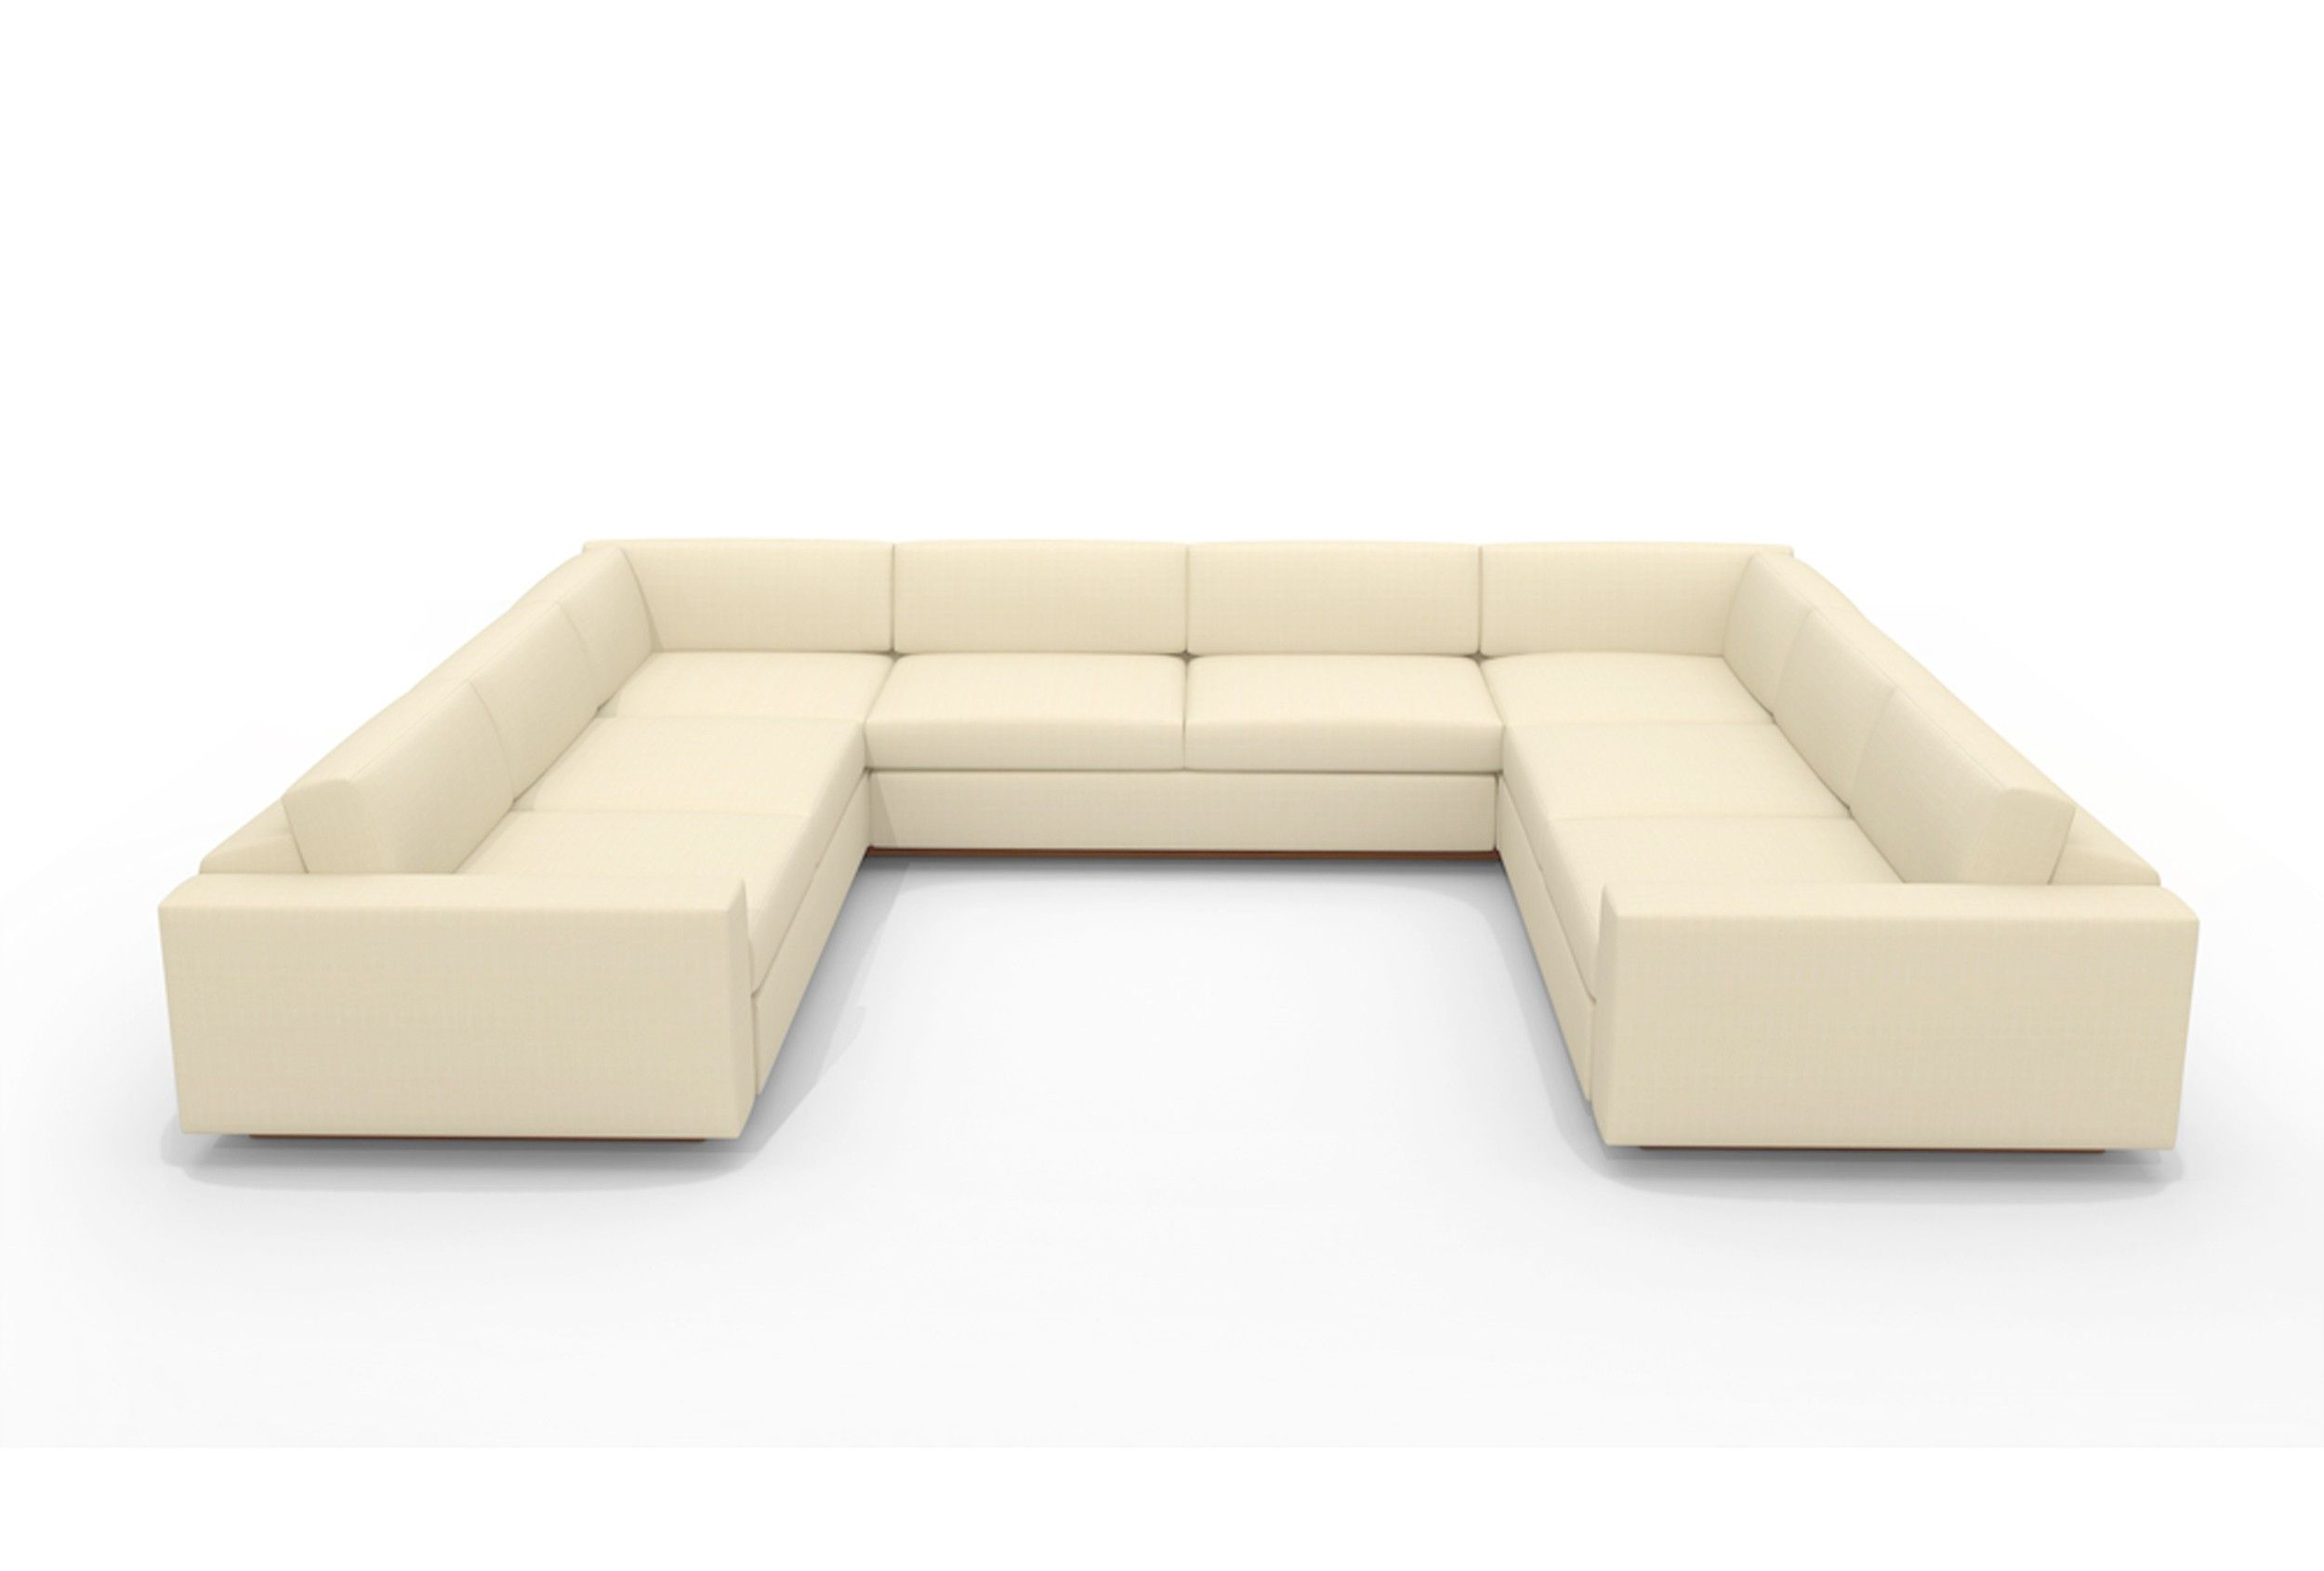 Jackson U Shaped Sectional Sofa Viesso In Marlow Bluebird U Shaped Sofa U Shaped Sectional U Shaped Sectional Sofa